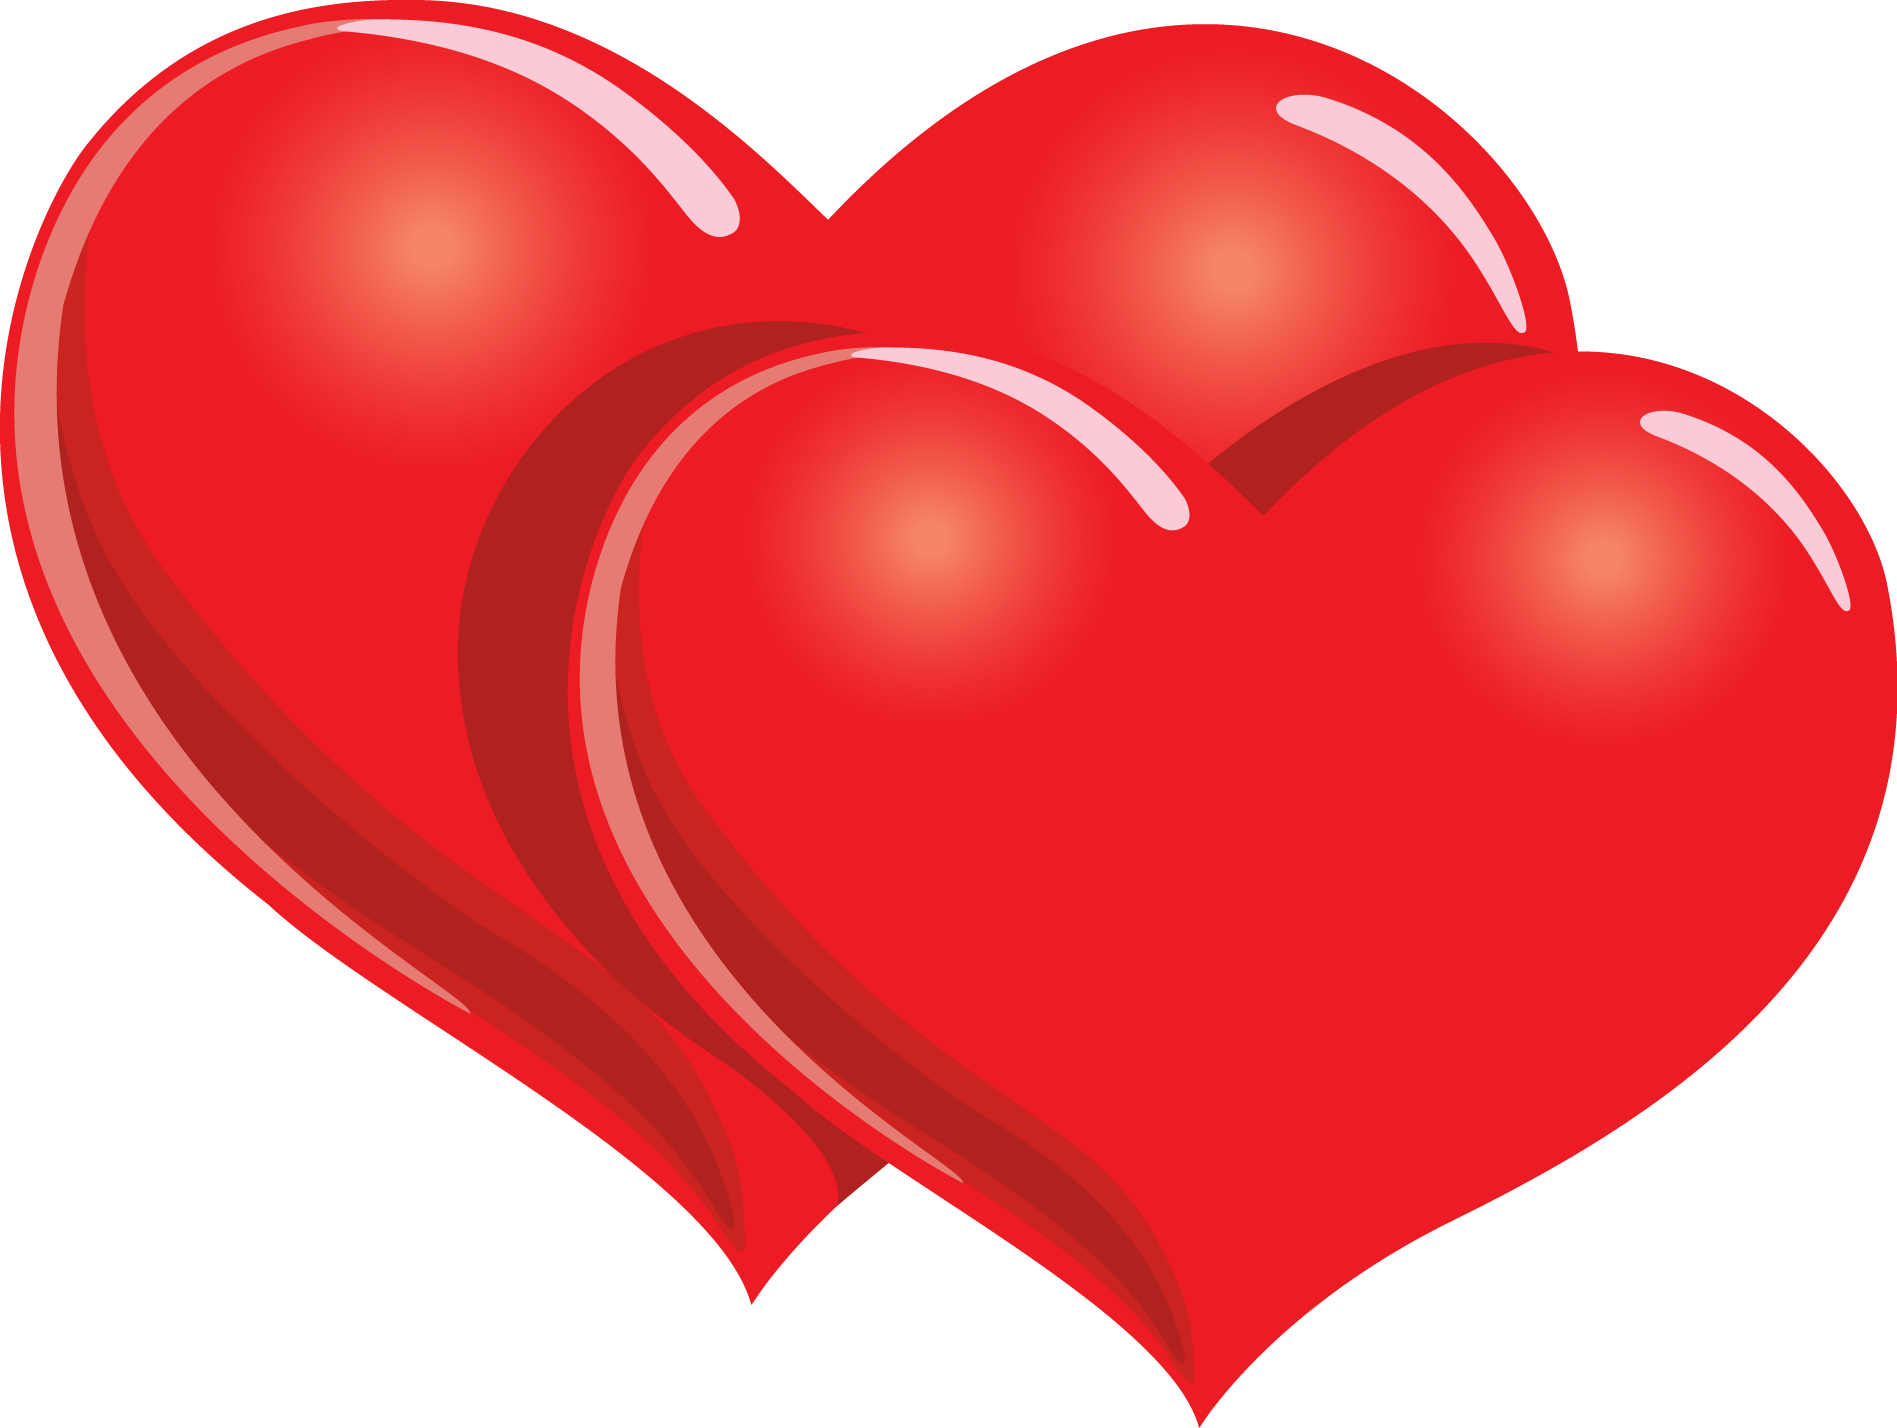 red symbol free. Clipart heart doily